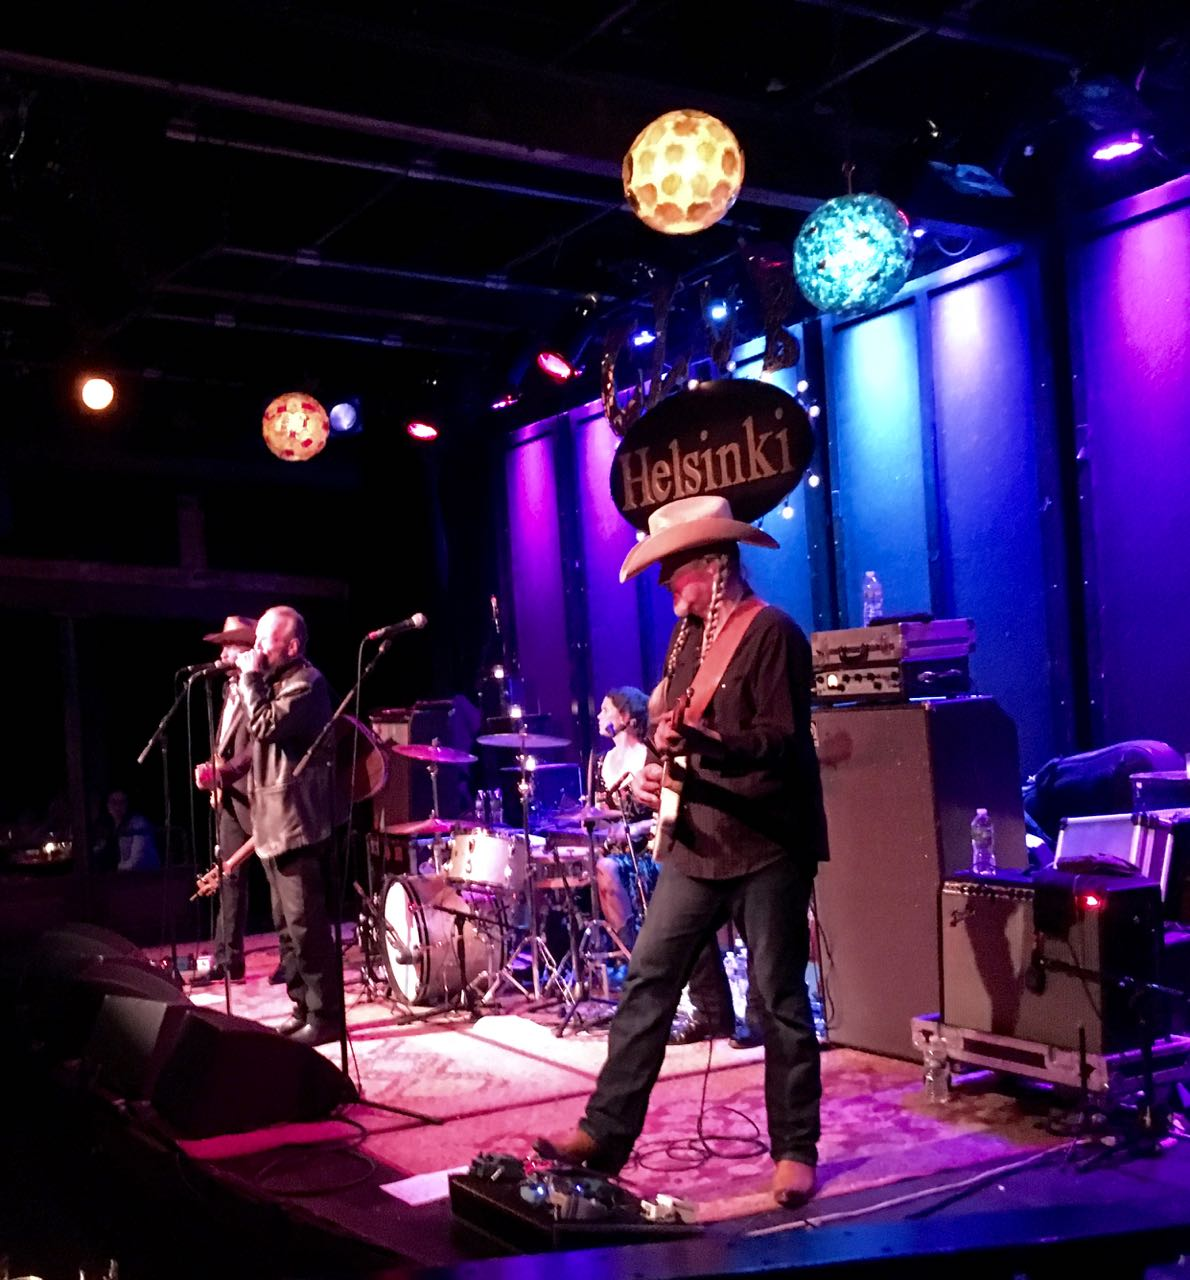 Dave and Phil Alvin & The Guilty Ones on stage at Helsinki Hudson